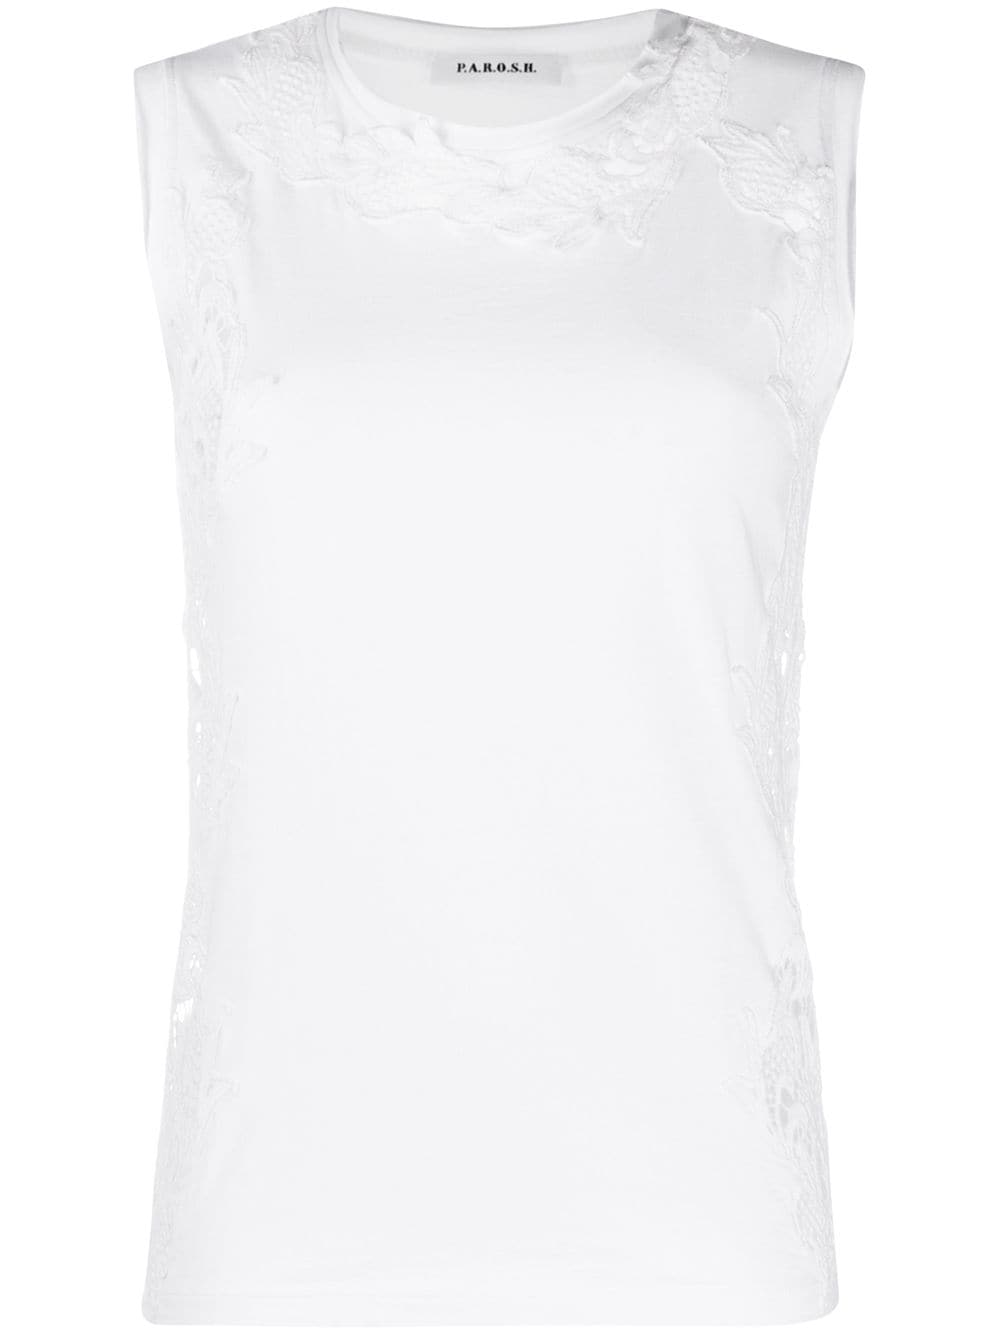 White cotton lace embroidery tank top  P.A.R.O.S.H.      D150564-COLACE001